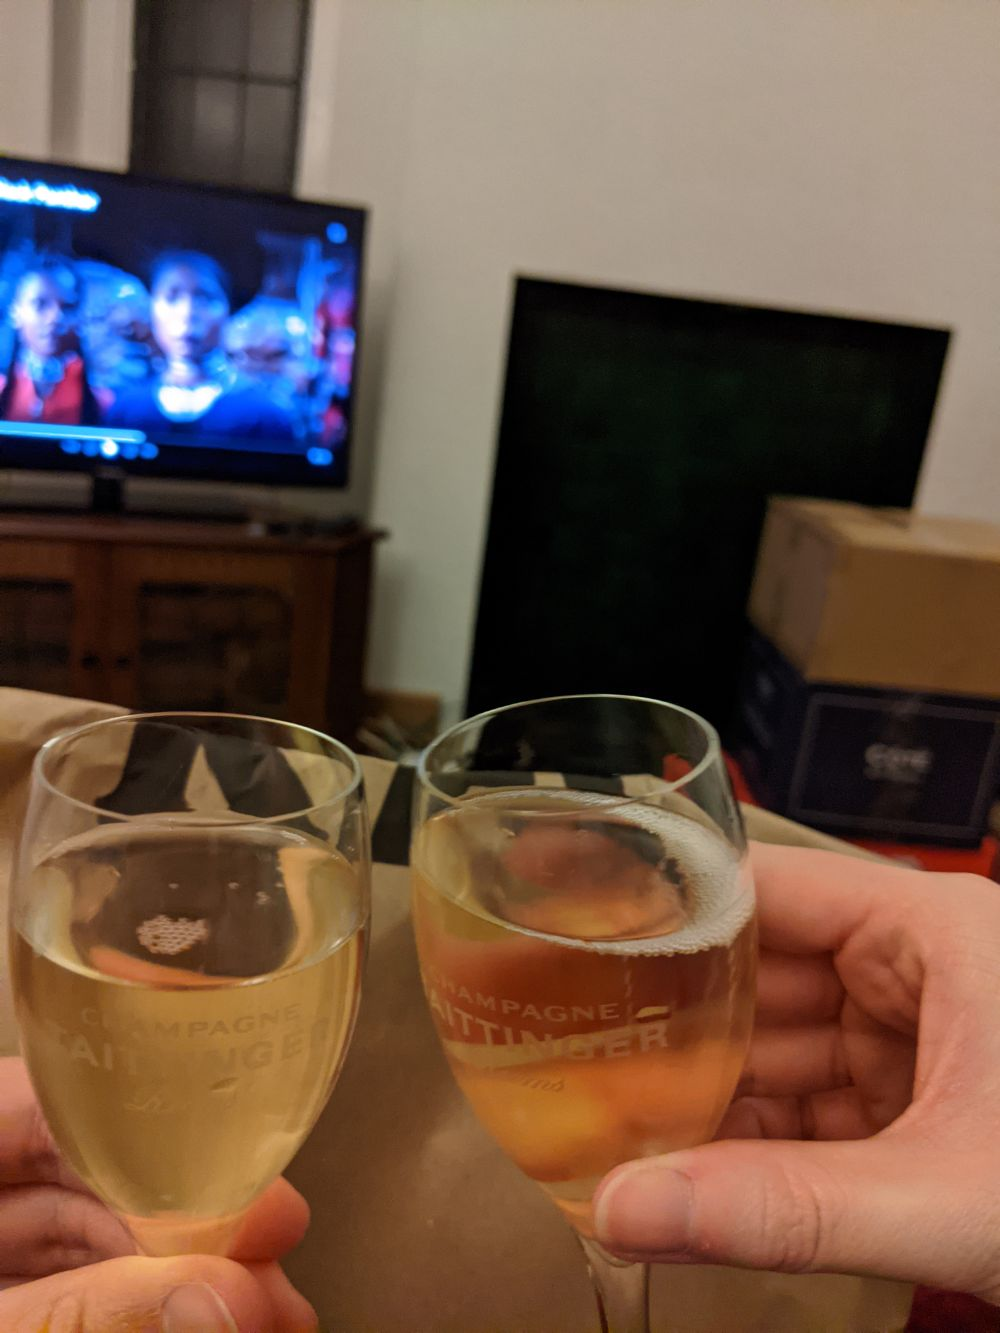 Jamie and Anna toasting to the new house with two Champagne flutes, in front of a bag of KFC, with Black Panther on the TV behind, next to boxes of yet-to-be-unpacked belongings